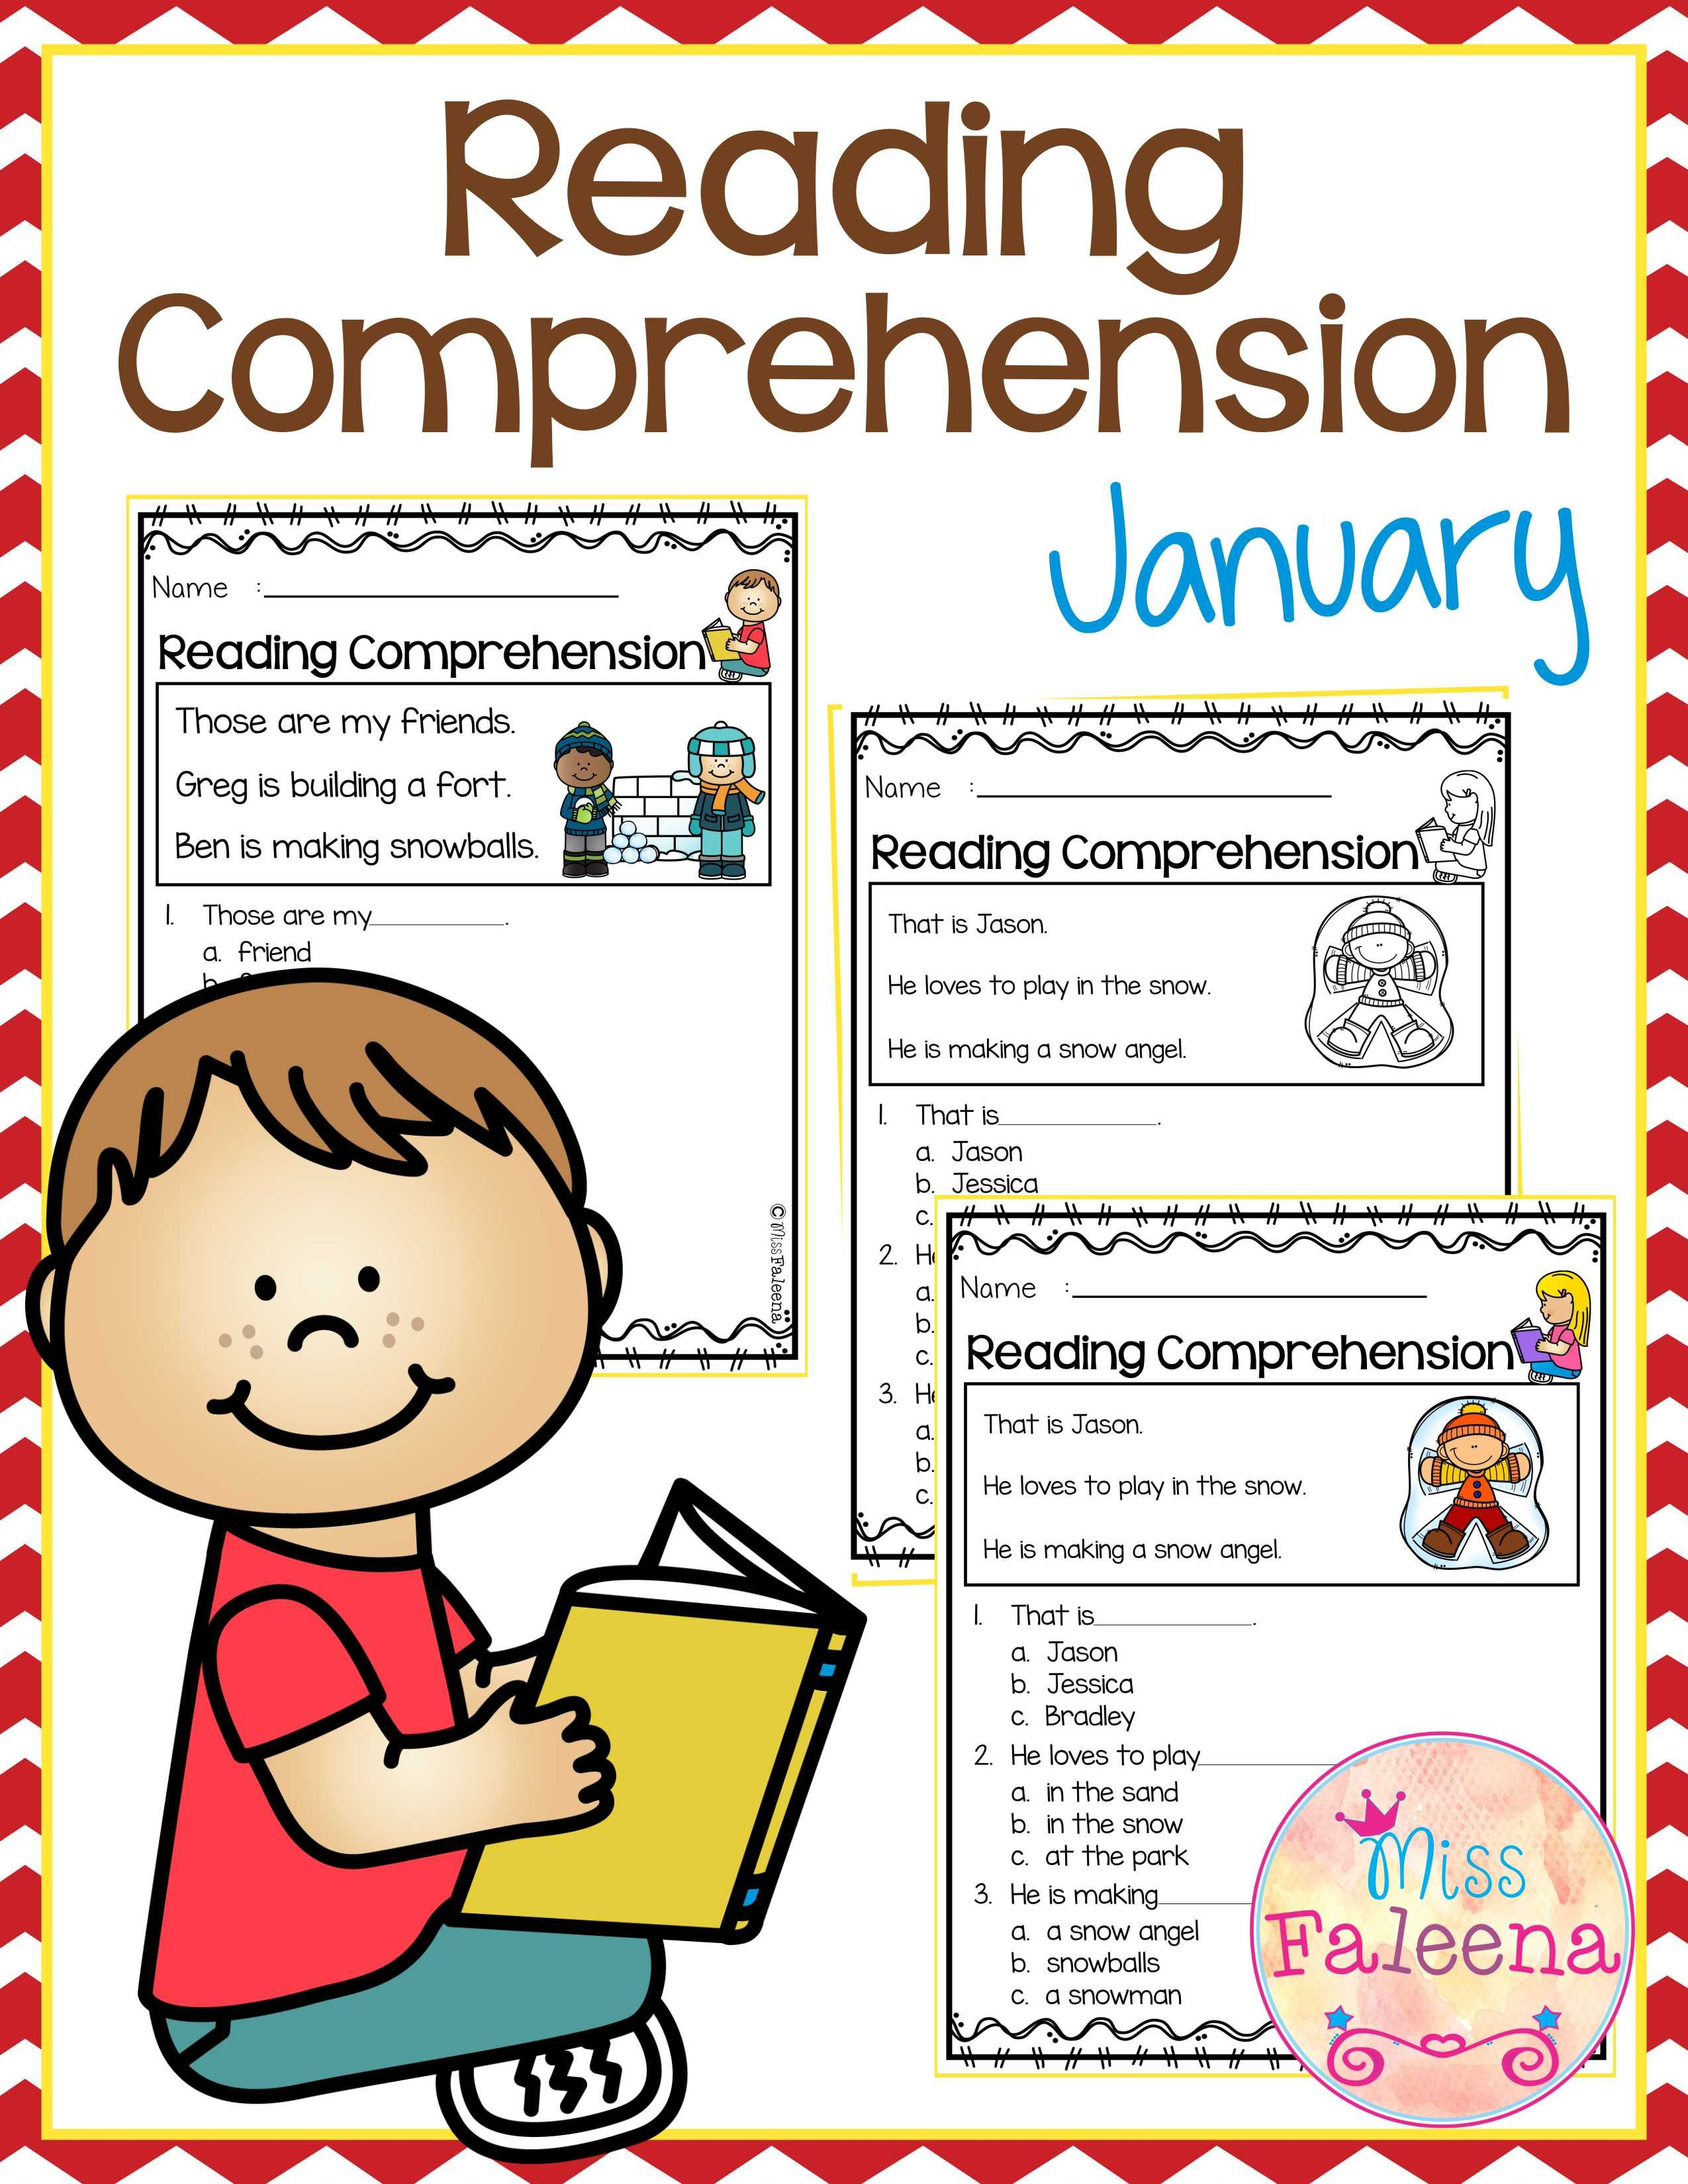 January Reading Comprehension Is Suitable For Kindergarten Students Or Beginning Readers T Reading Comprehension Reading Comprehension Worksheets Comprehension [ 3300 x 2550 Pixel ]